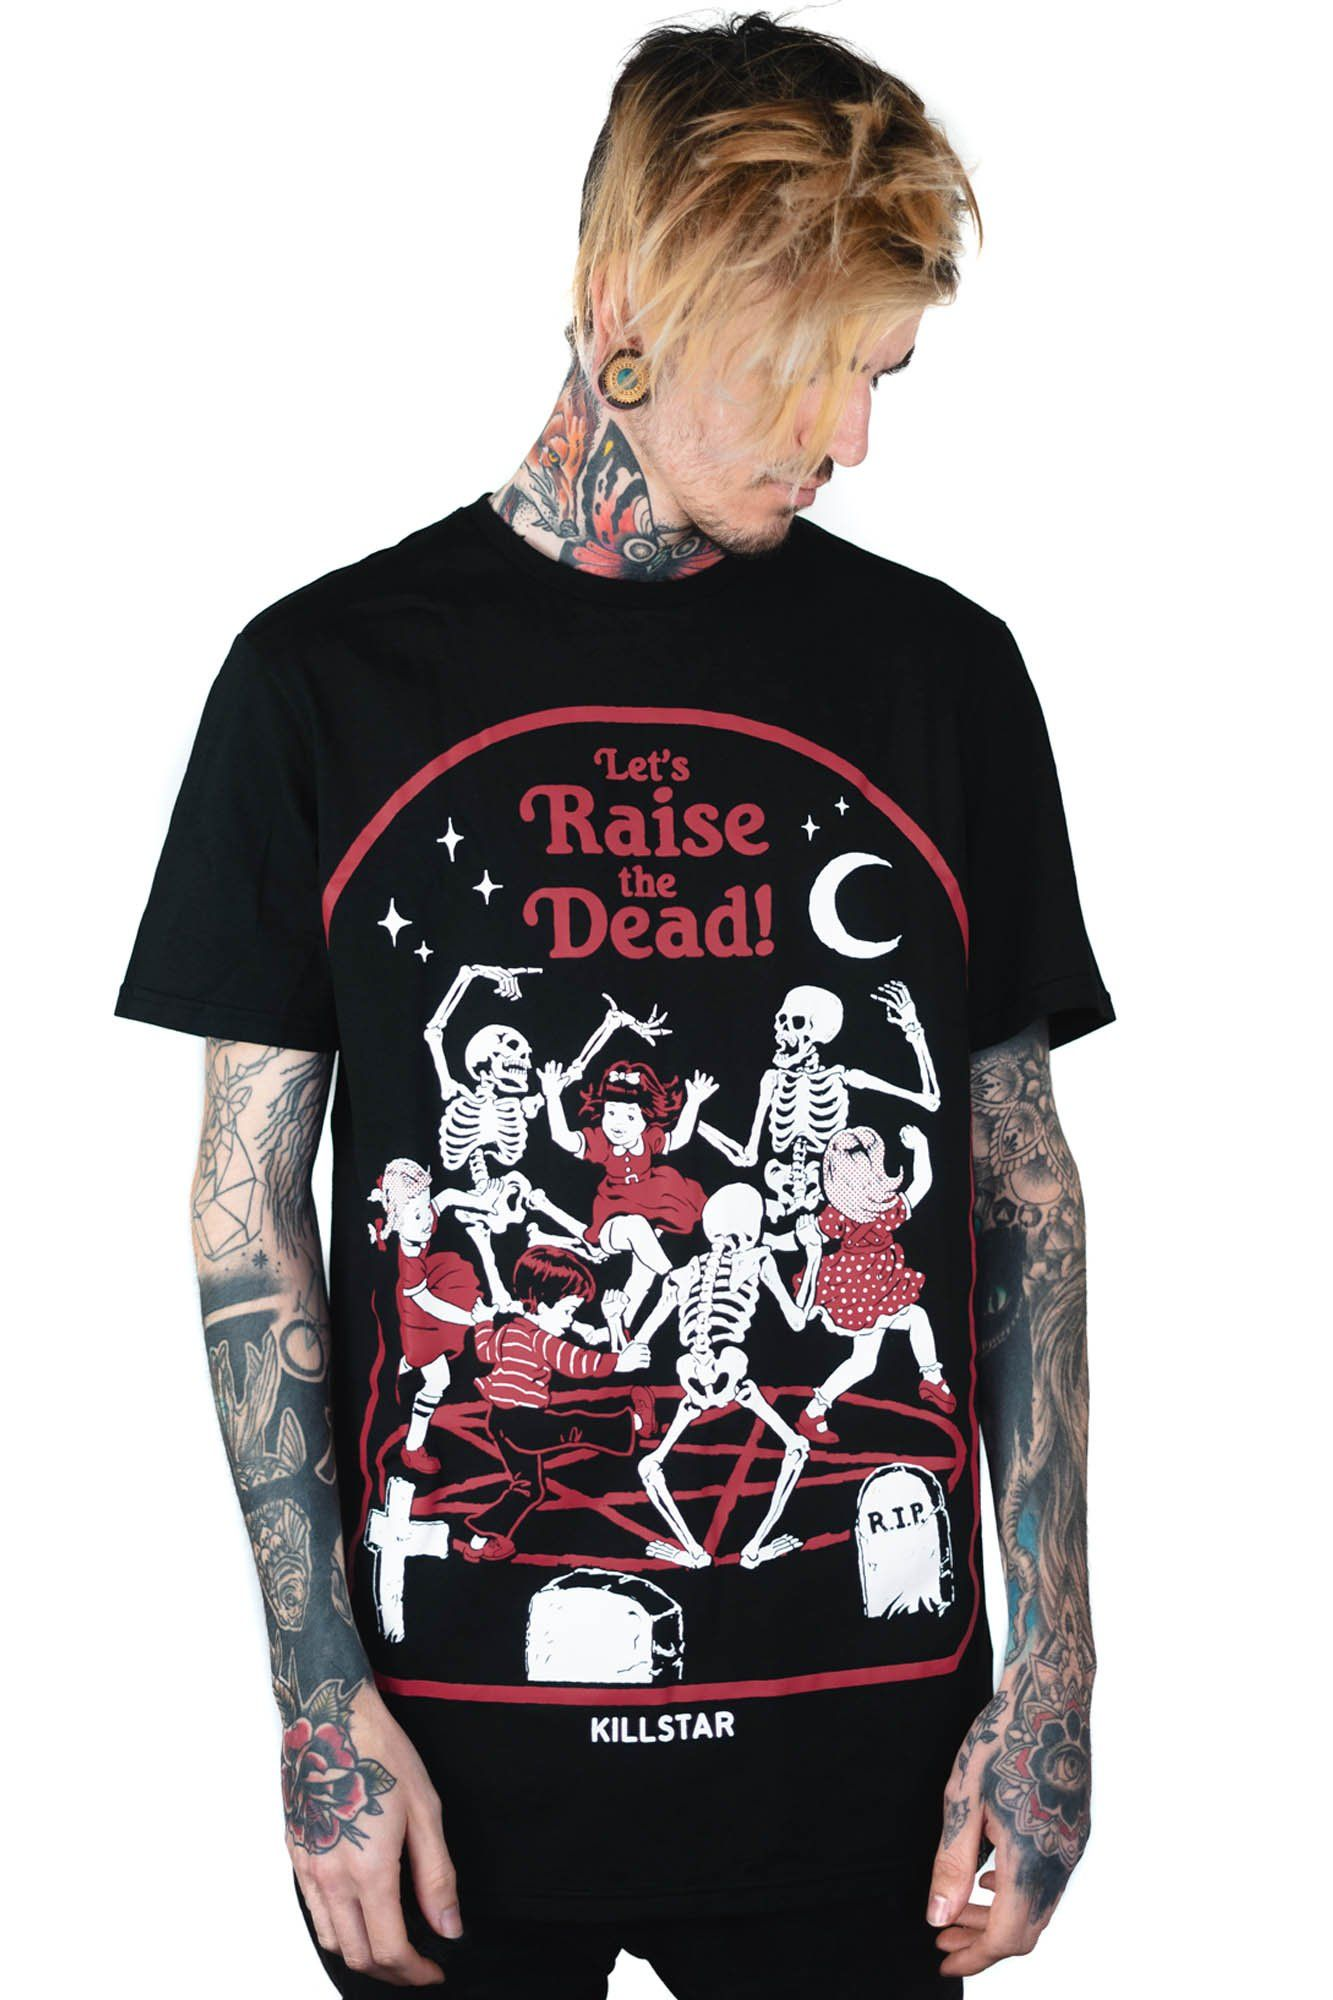 fd0dafb5af60cd Raise The Dead T-Shirt in 2019